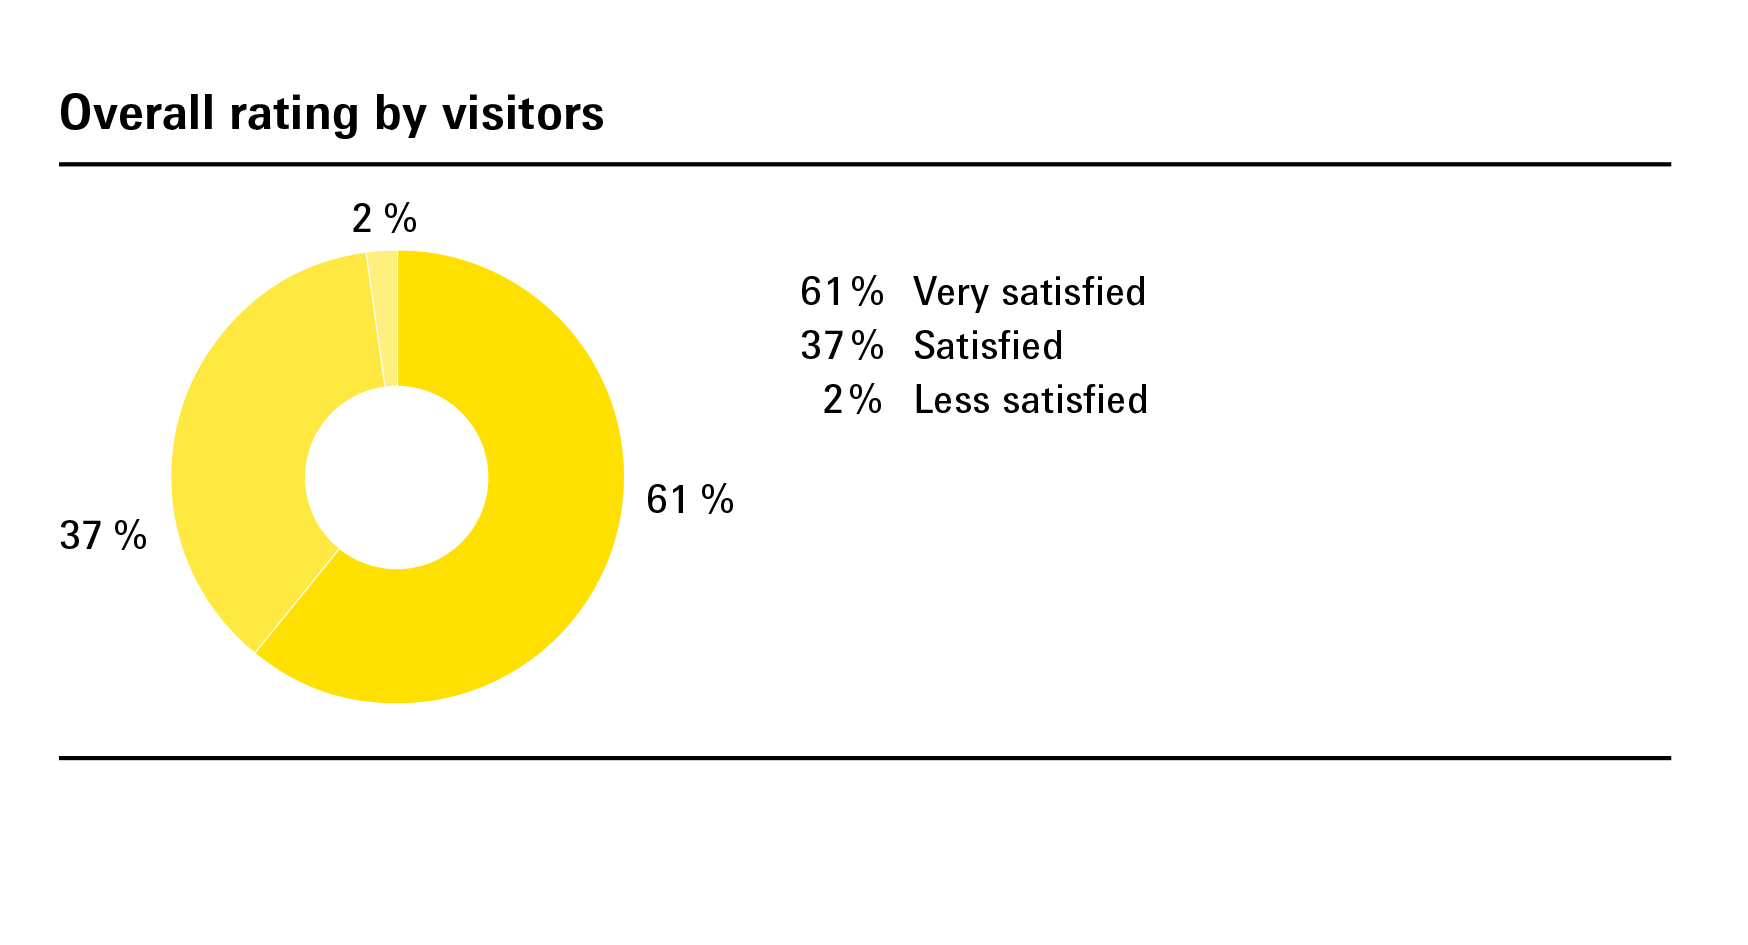 Overall rating by visitors